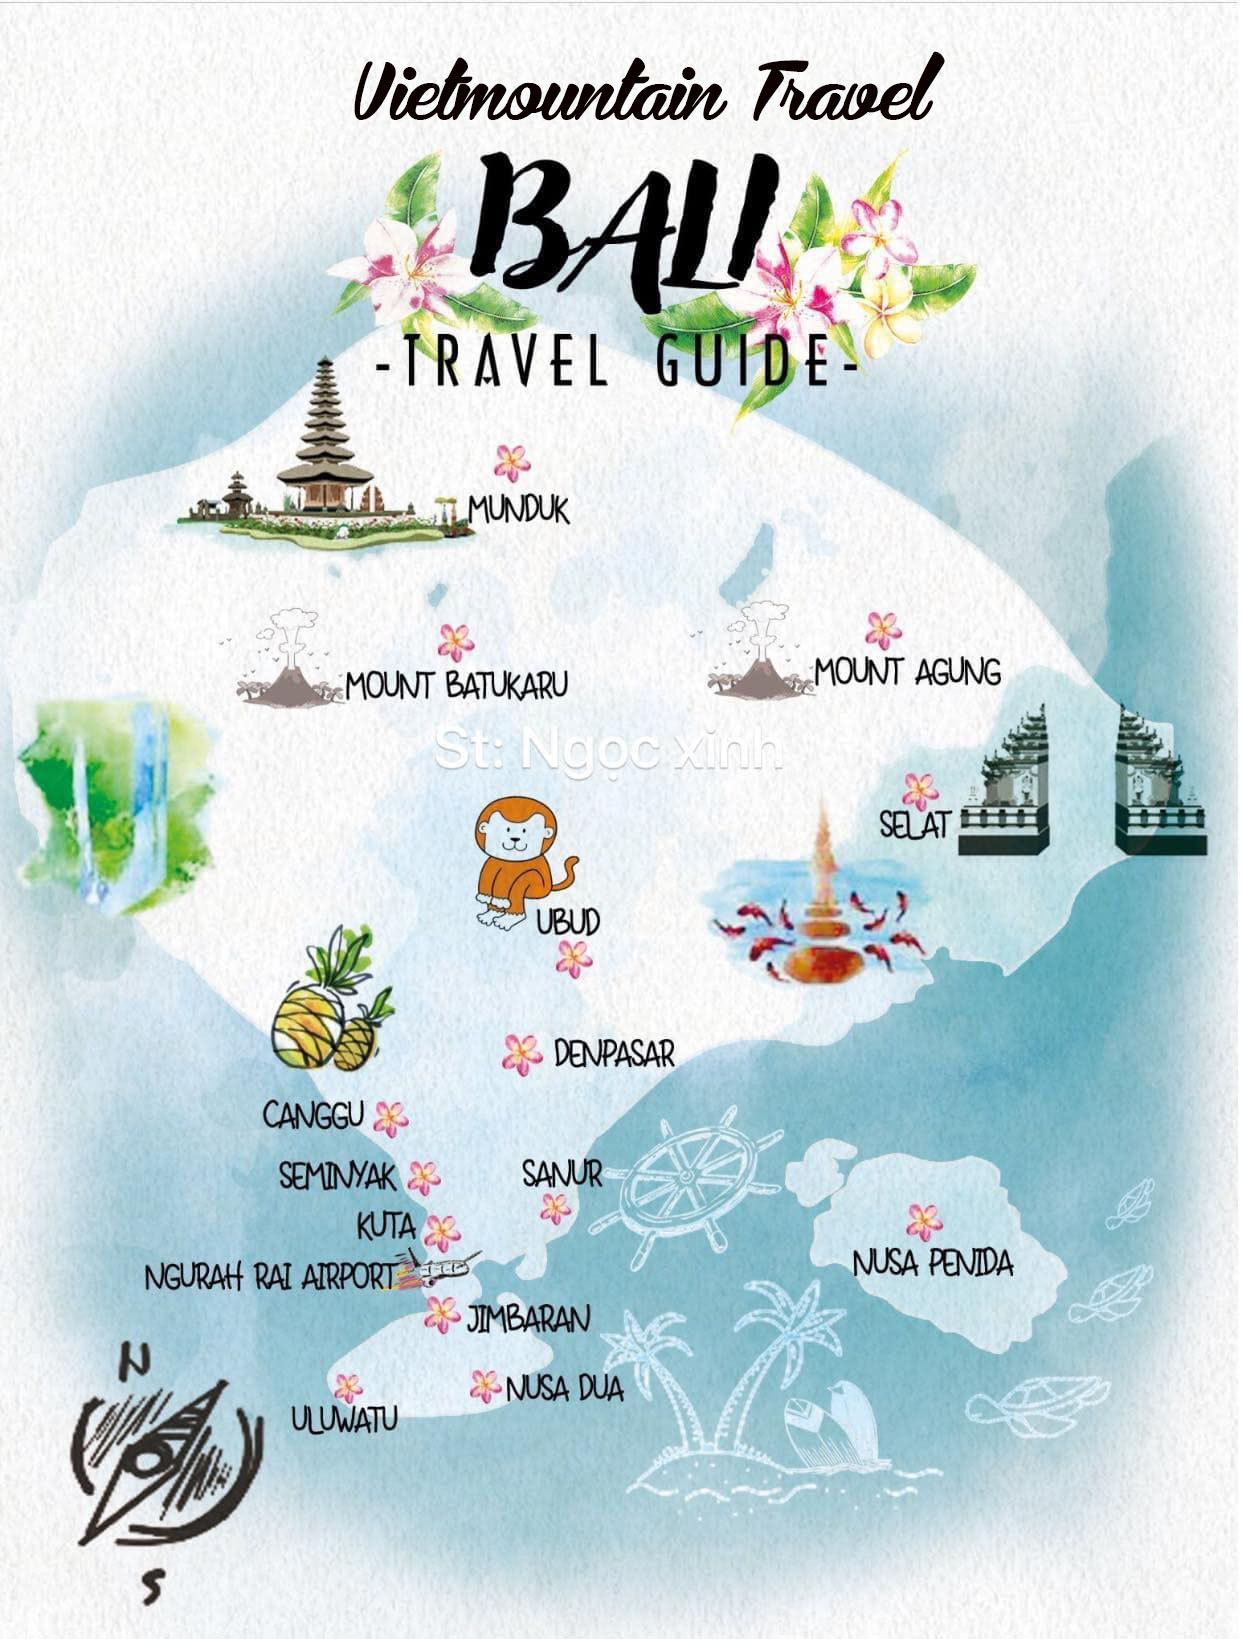 tour-ha-noi-bali-thien-duong-bien-dao-4-ngay-3-dem-vietmountain-travel13